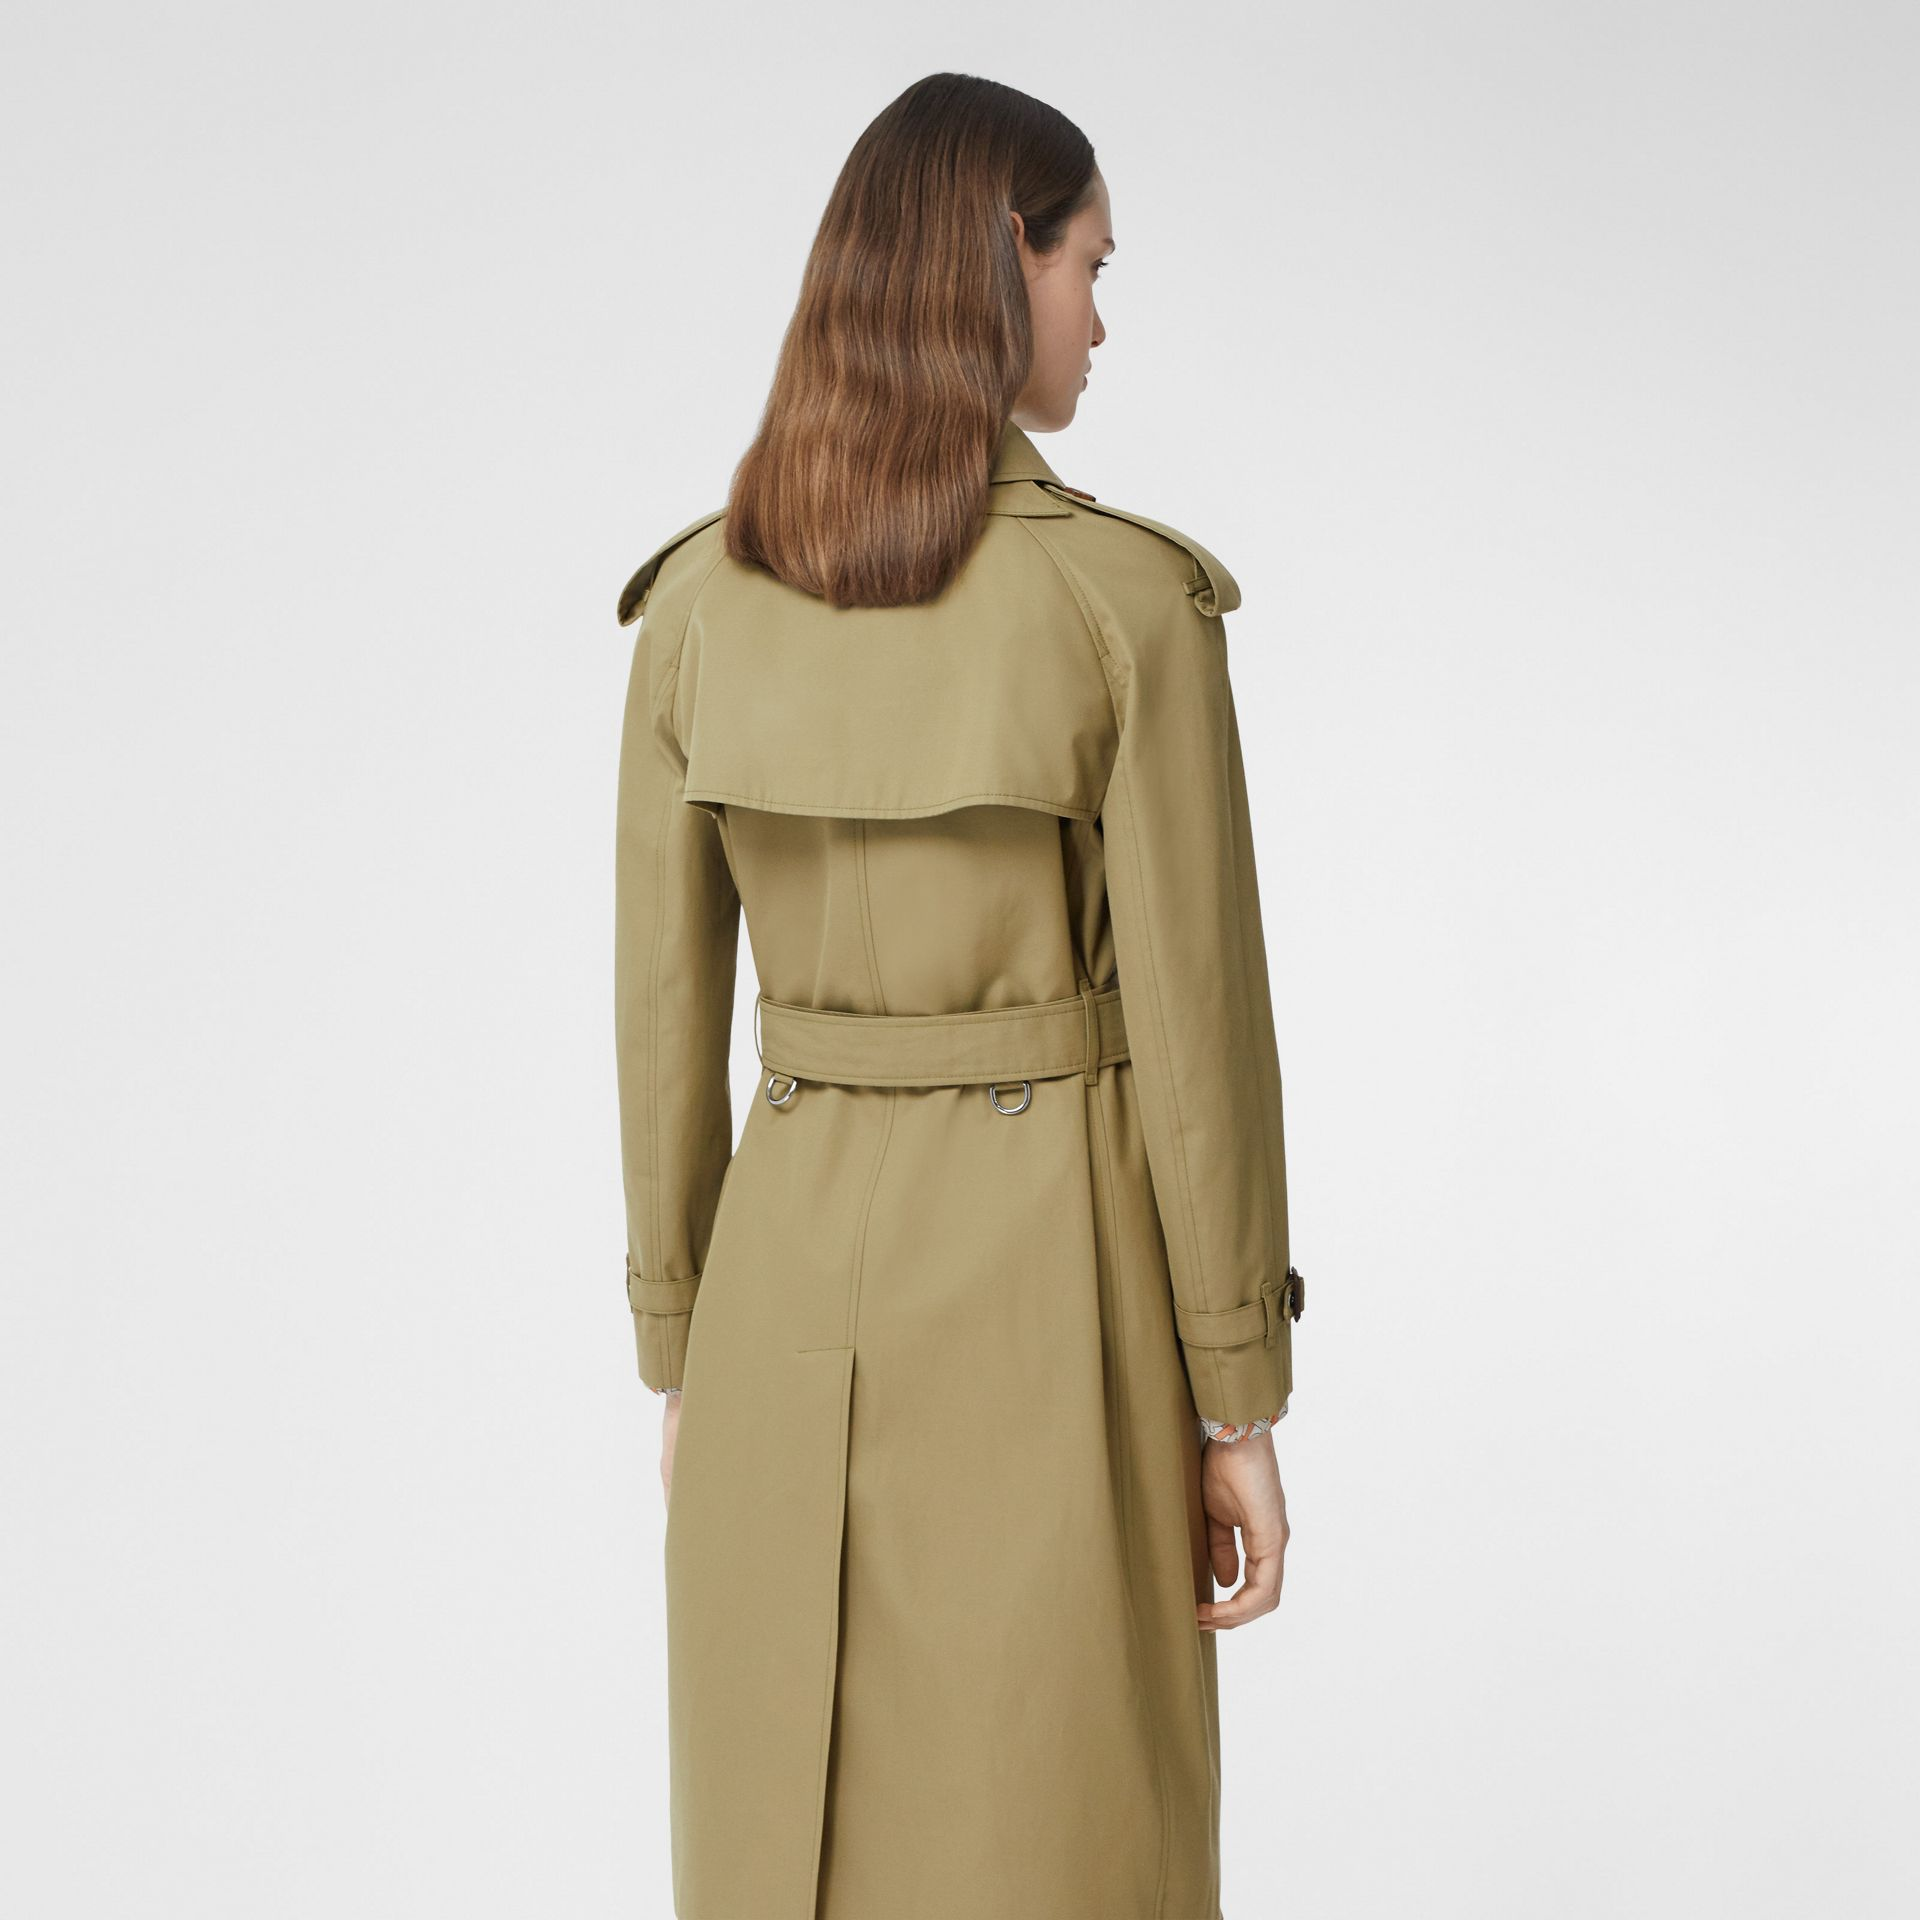 Animalia Print-lined Cotton Gabardine Trench Coat in Rich Olive - Women | Burberry - gallery image 2